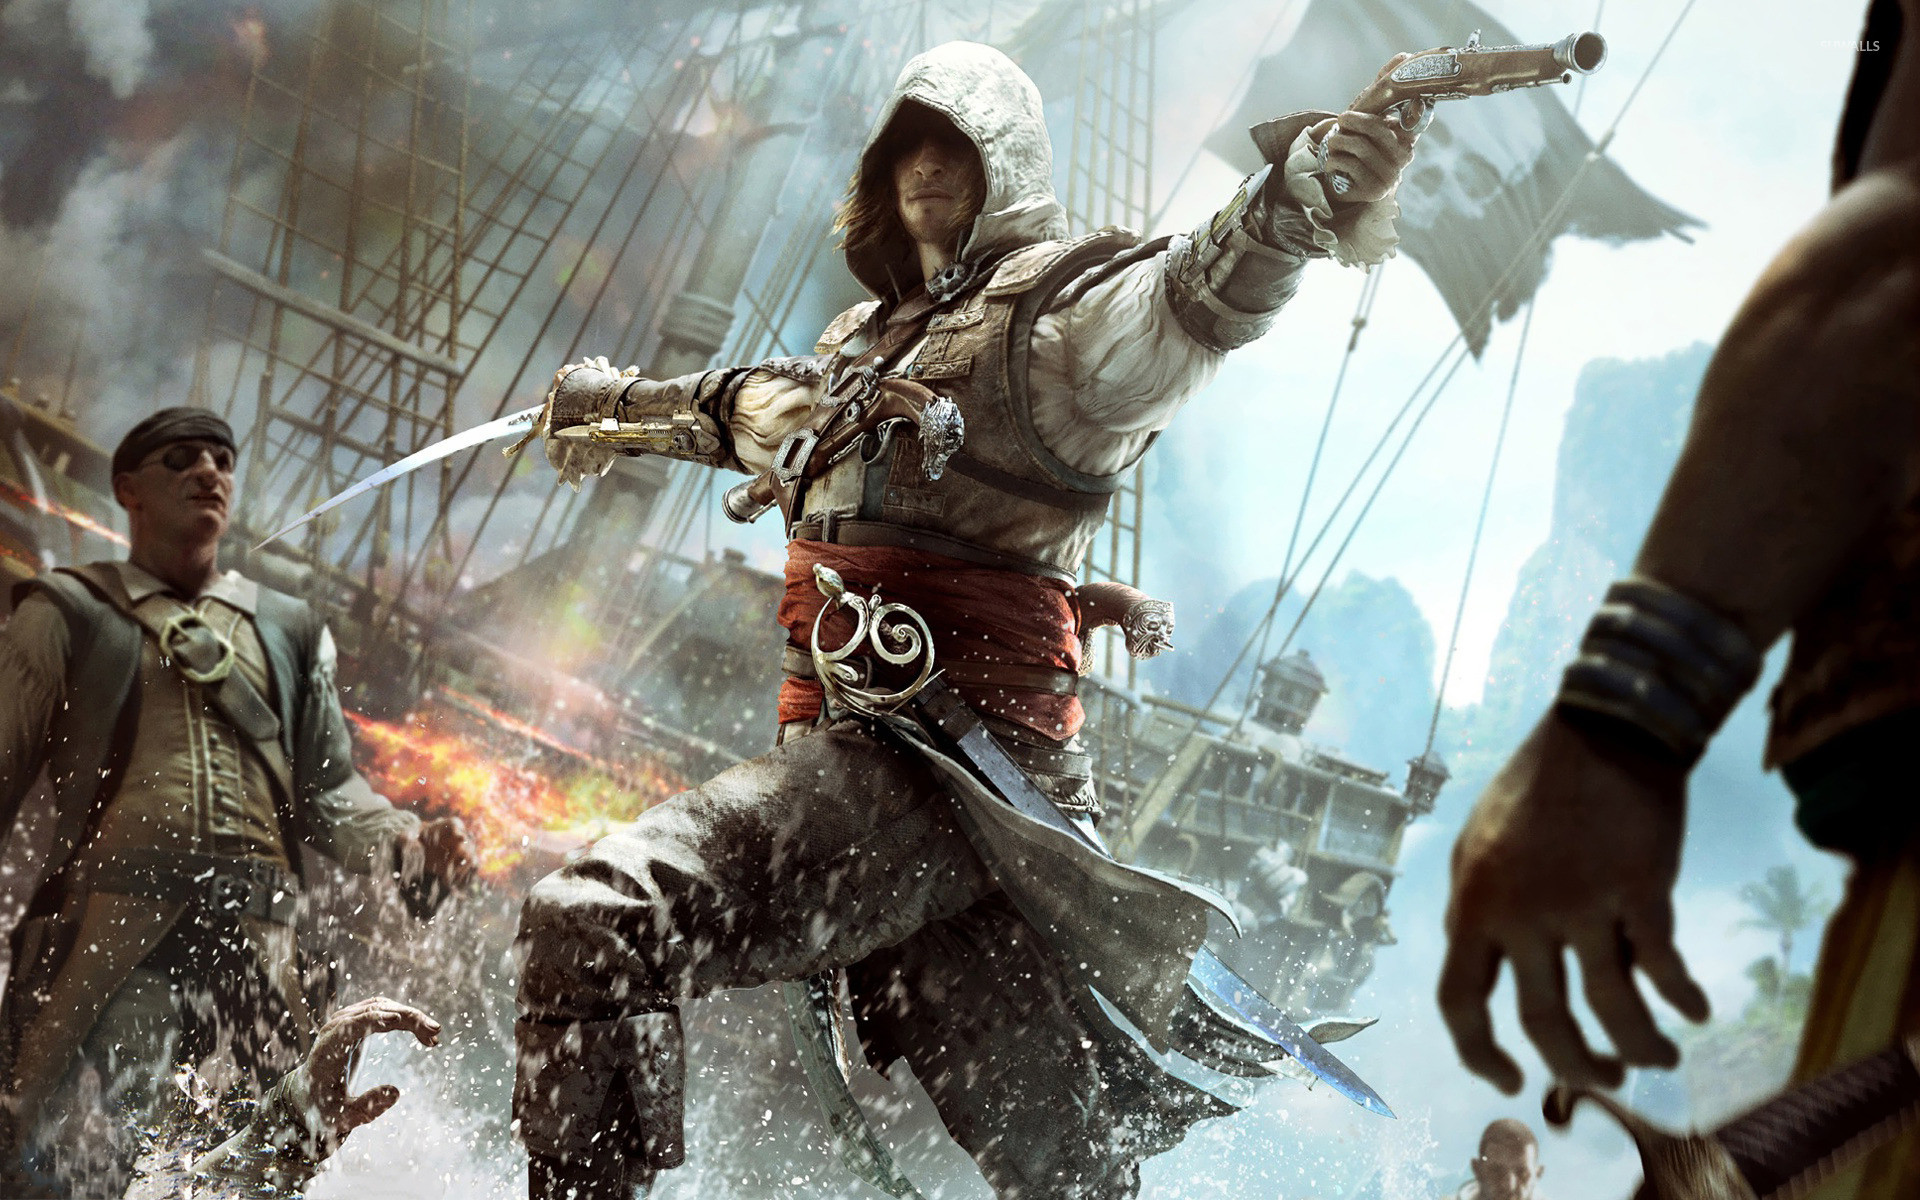 1920x1200 Assassin's Creed IV: Black Flag [8] wallpaper